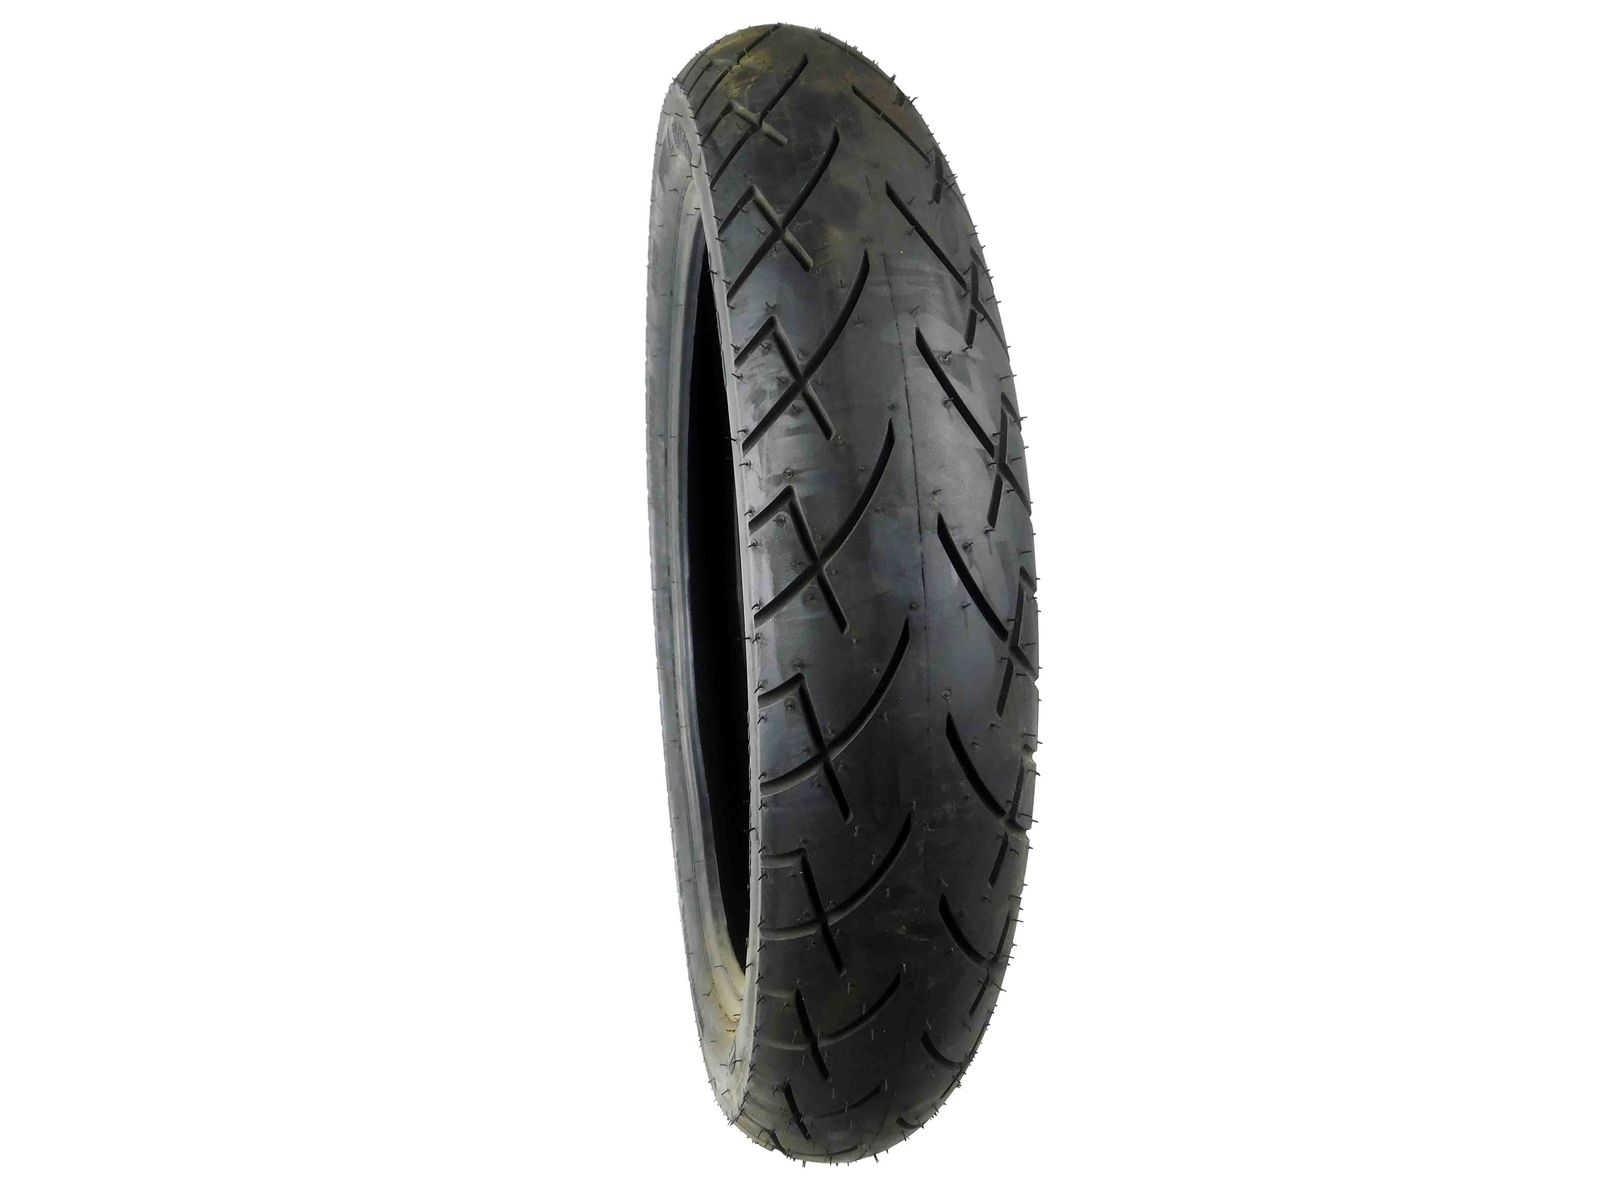 Full-Bore-110-90-19-Front-140-90-15-Rear-Set-Cruiser-Motorcycle-Tires-image-2